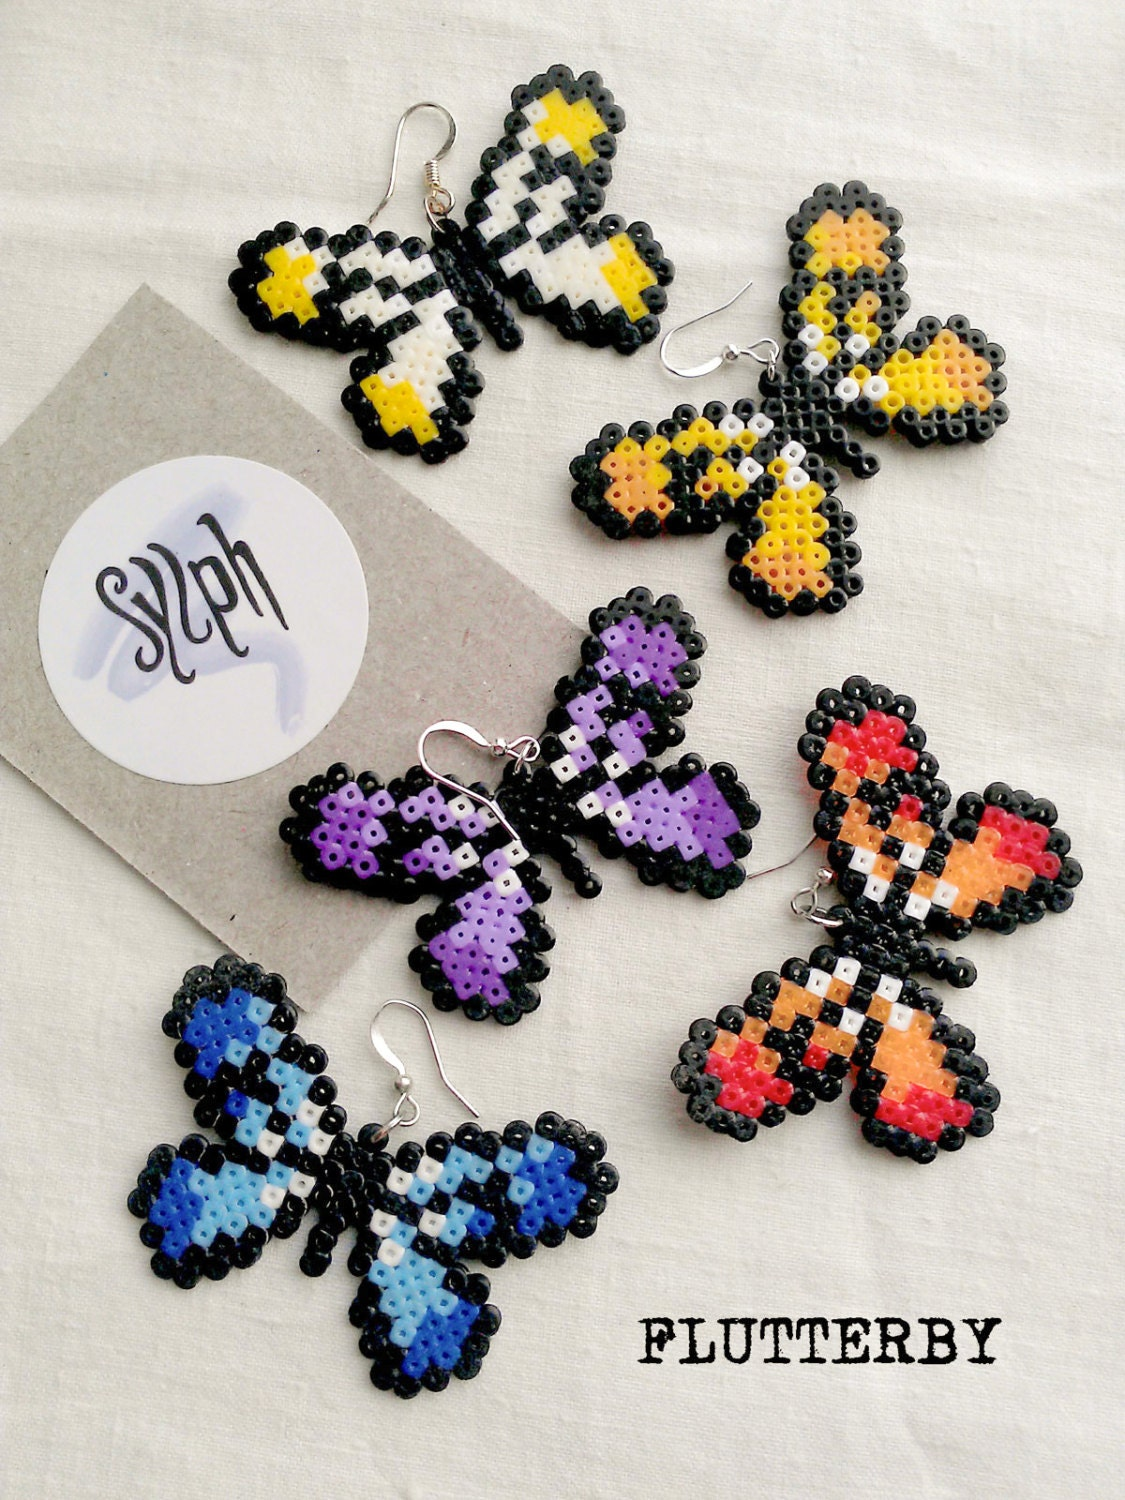 shades of blue pixelated butterfly earrings flutterby made of hama mini perler beads in 8bit. Black Bedroom Furniture Sets. Home Design Ideas